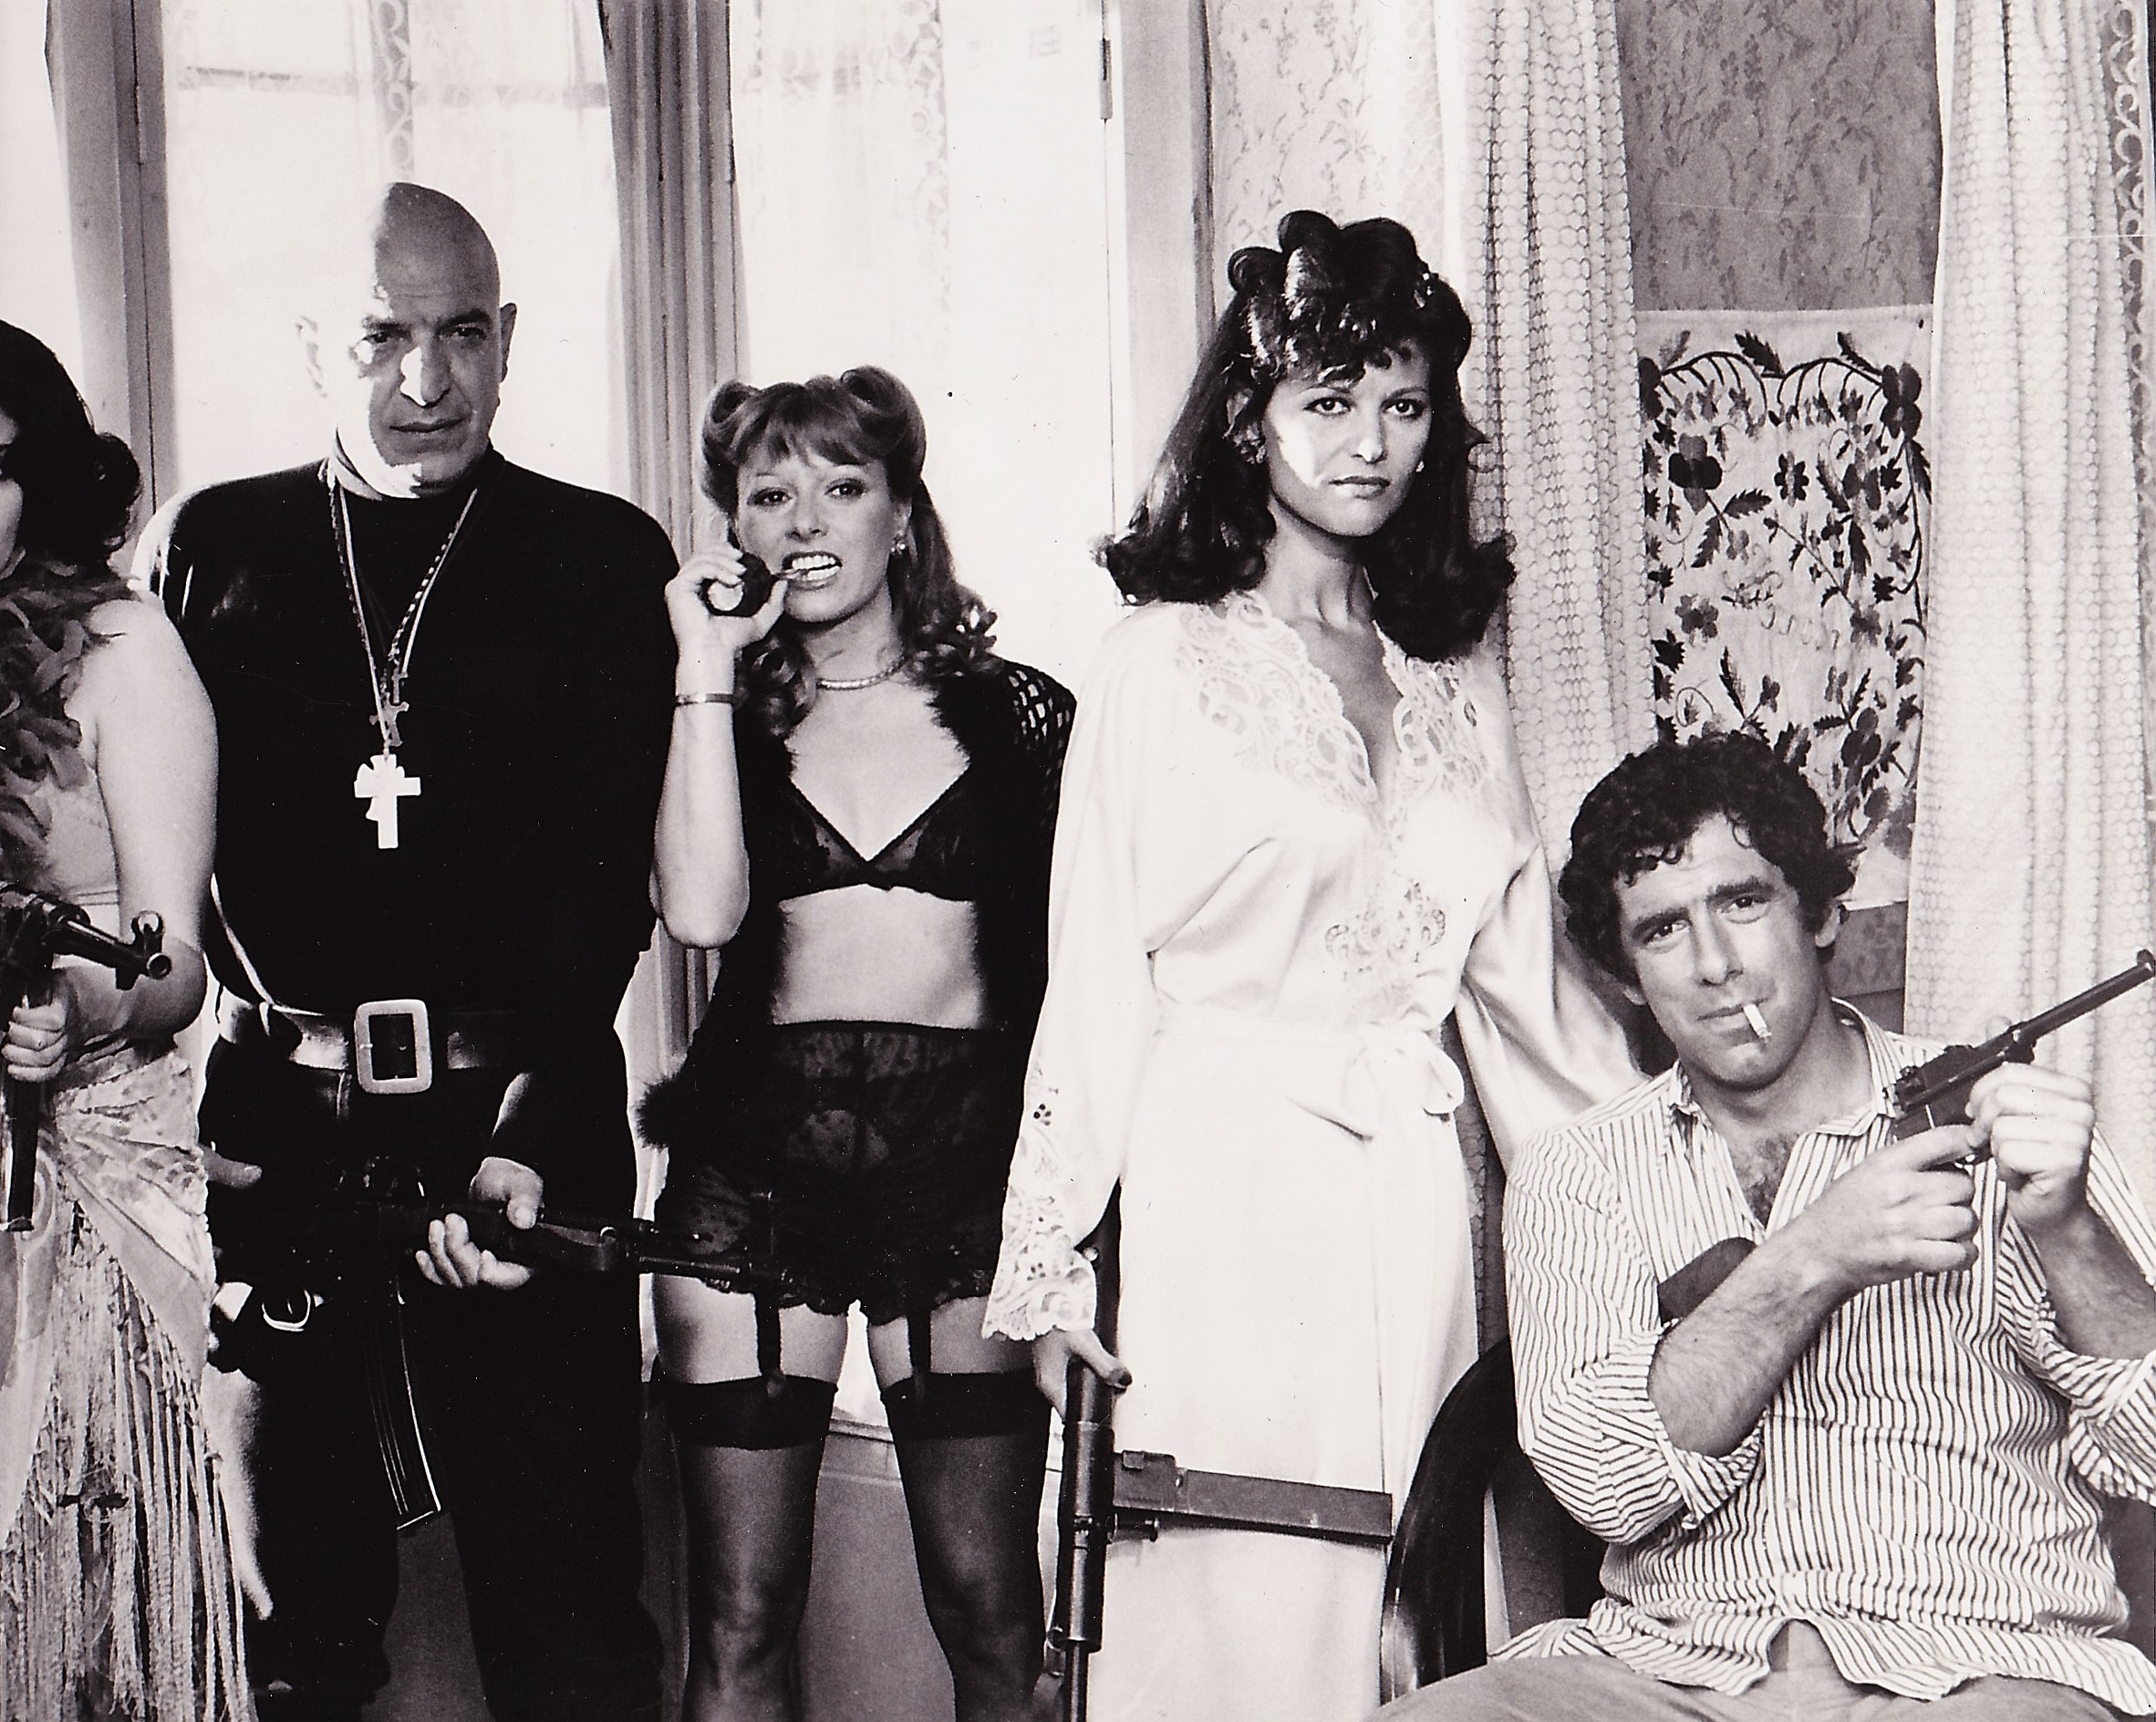 Claudia Cardinale, Elliott Gould, Telly Savalas, and Vanna Reville in Escape to Athena (1979)